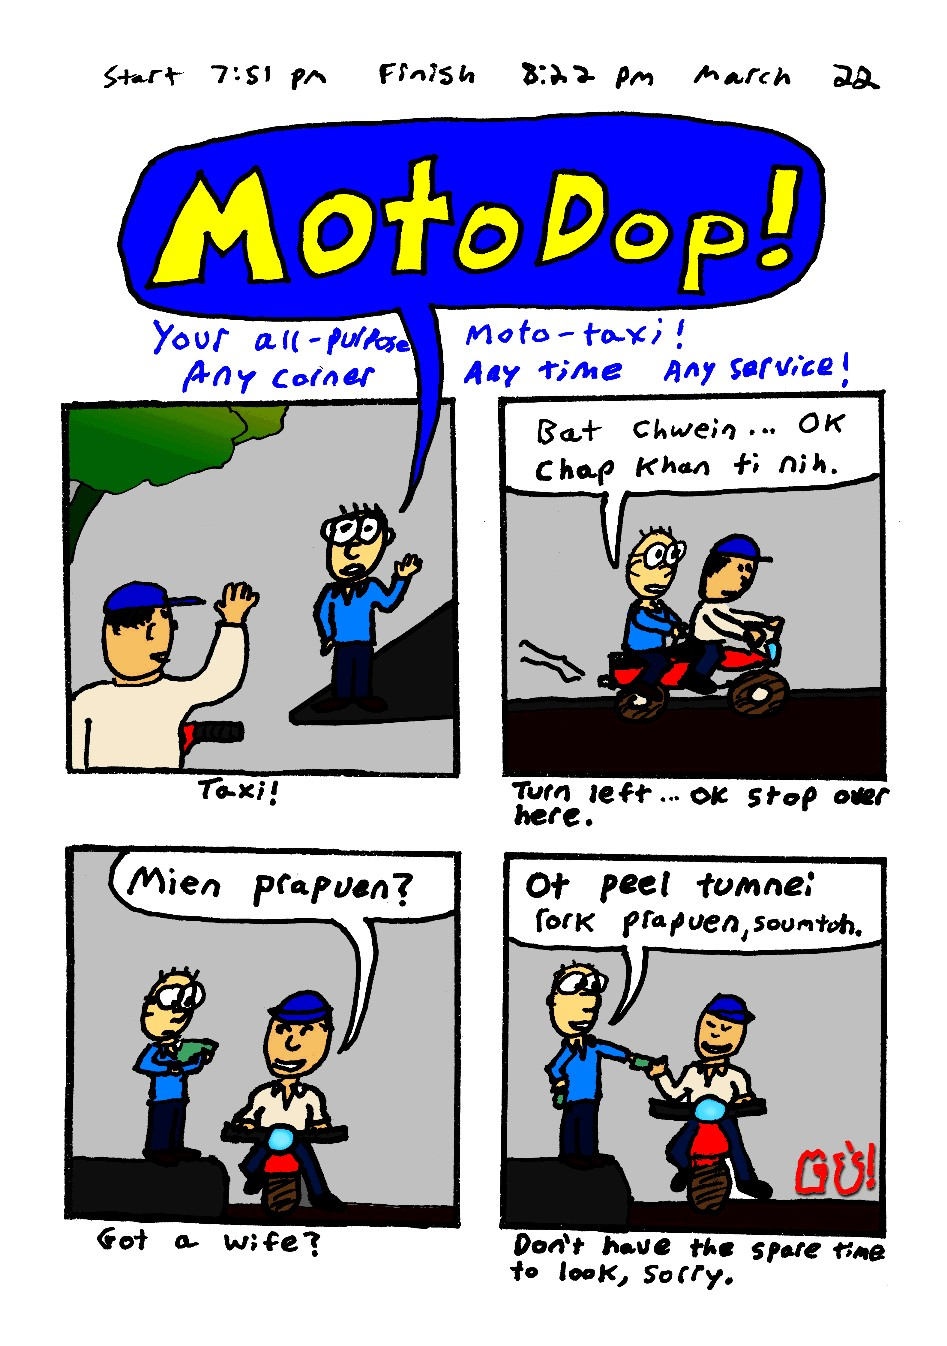 MotoDop one stop shop!